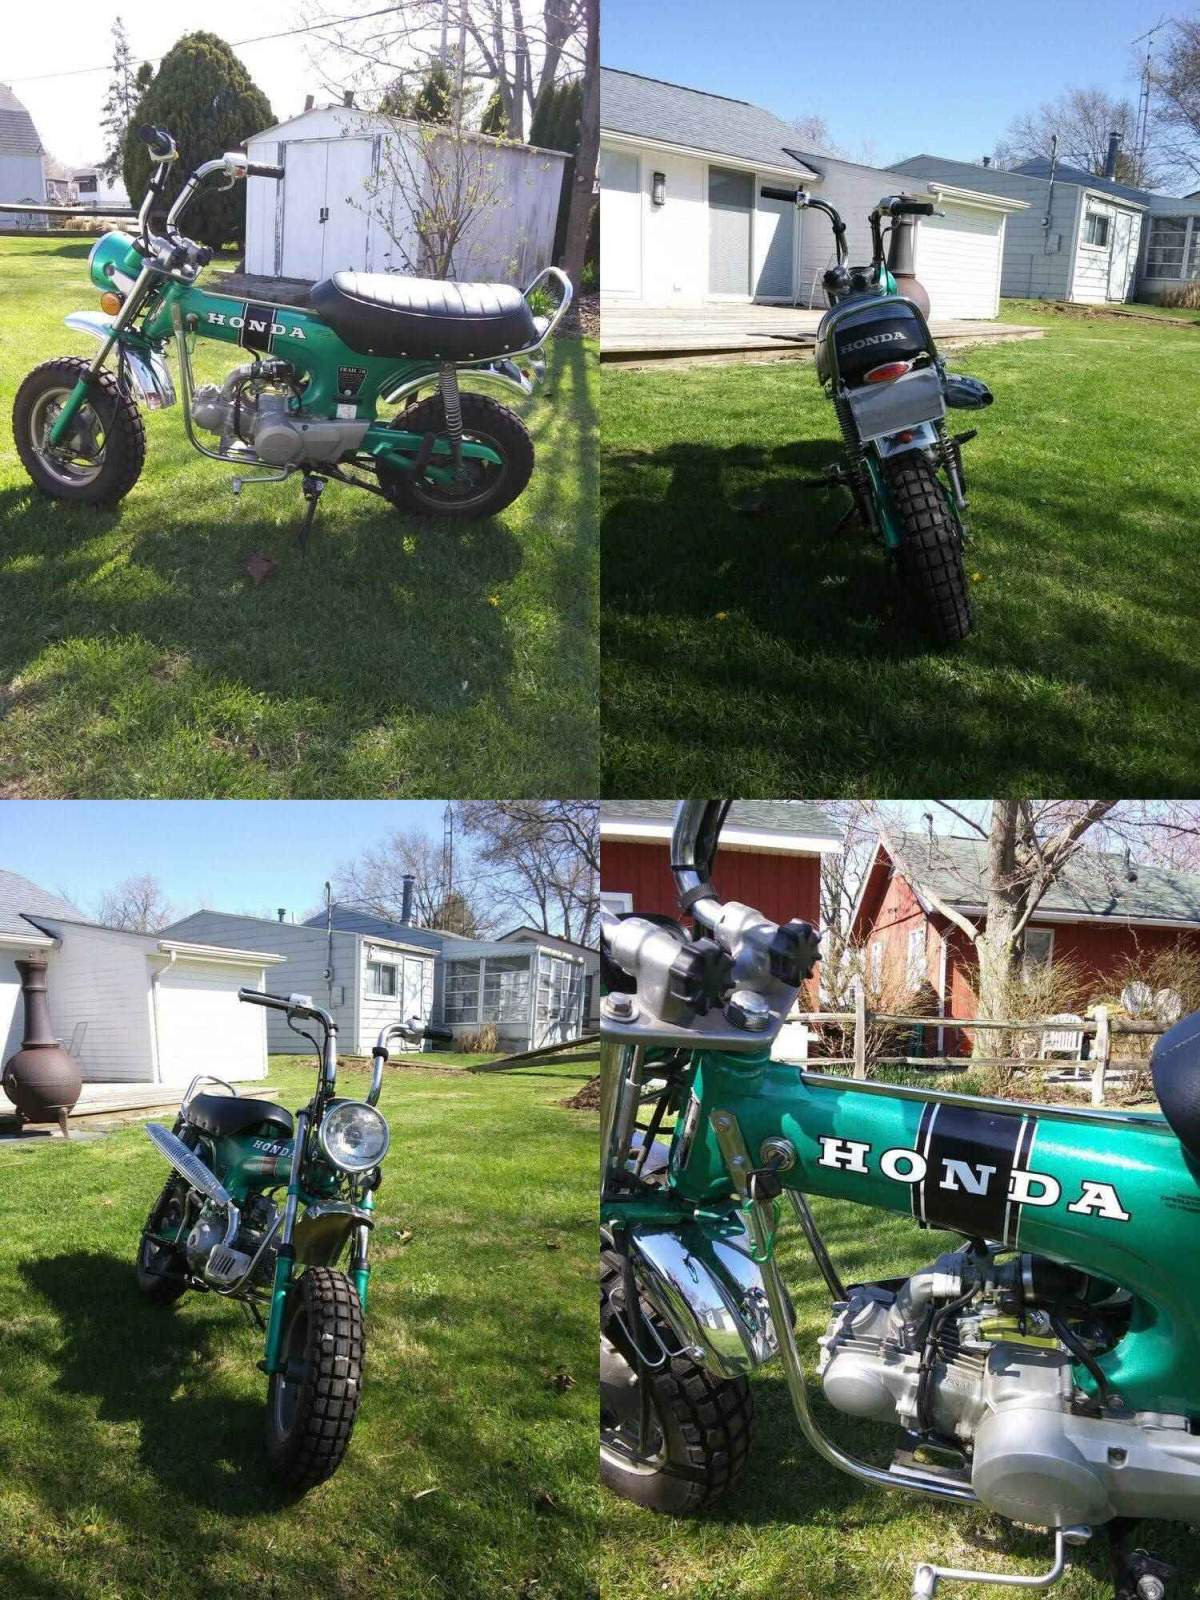 1969 Honda CT Green used for sale usa